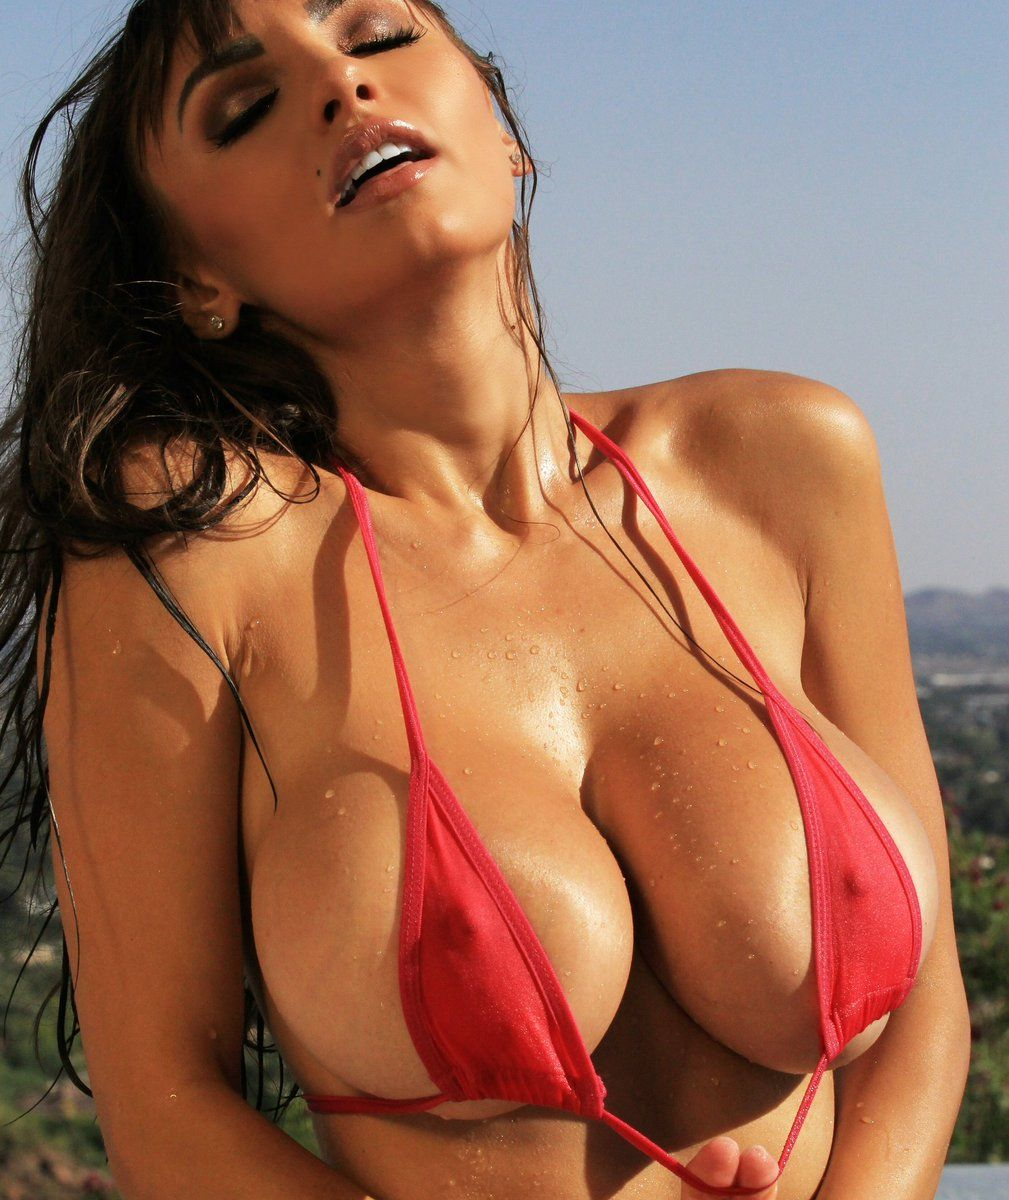 interracial-torrent-red-bikini-boobs-in-movies-chested